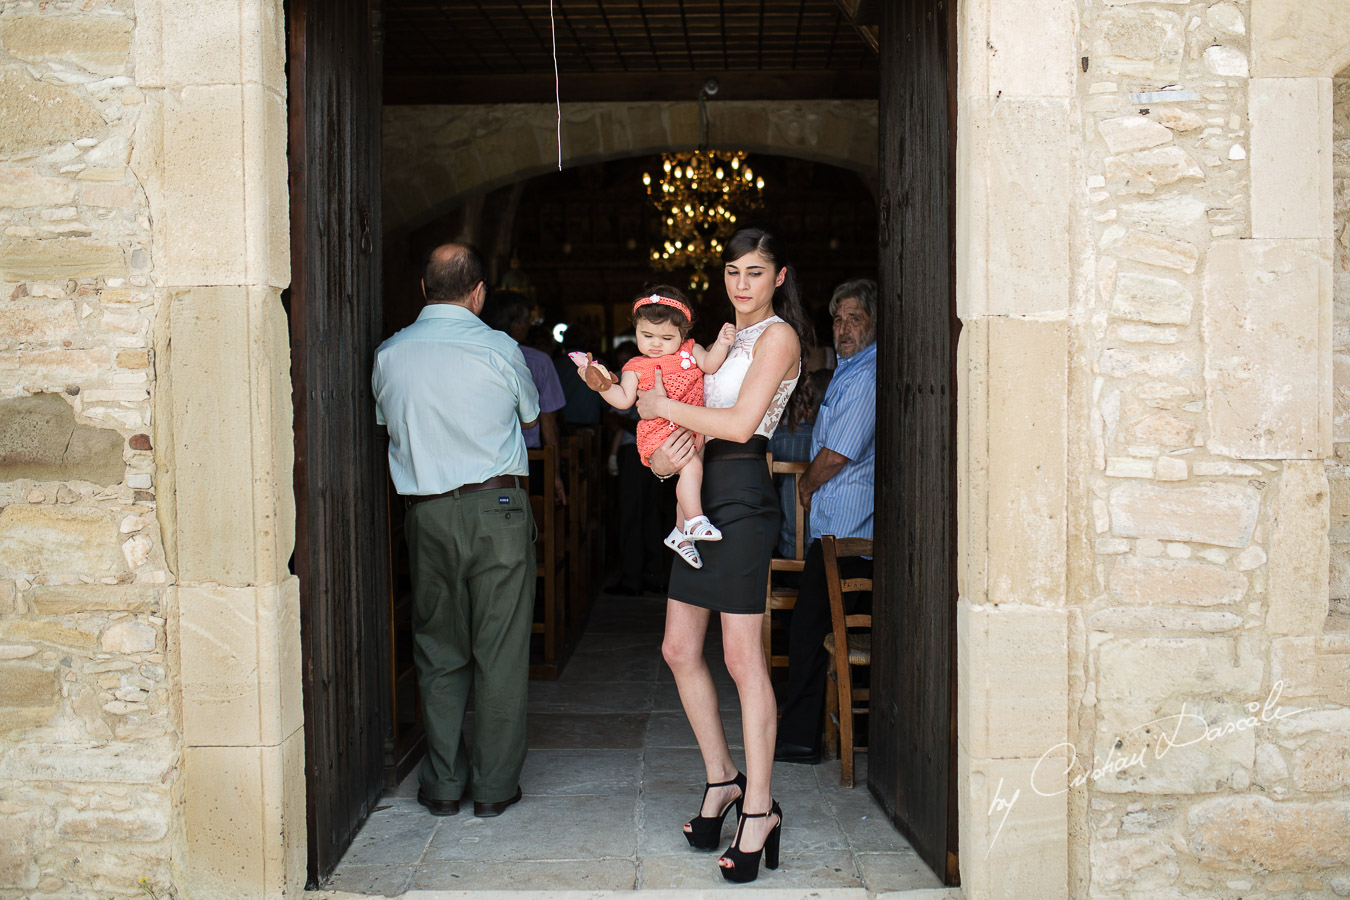 Joyous Christening in Limassol - 18